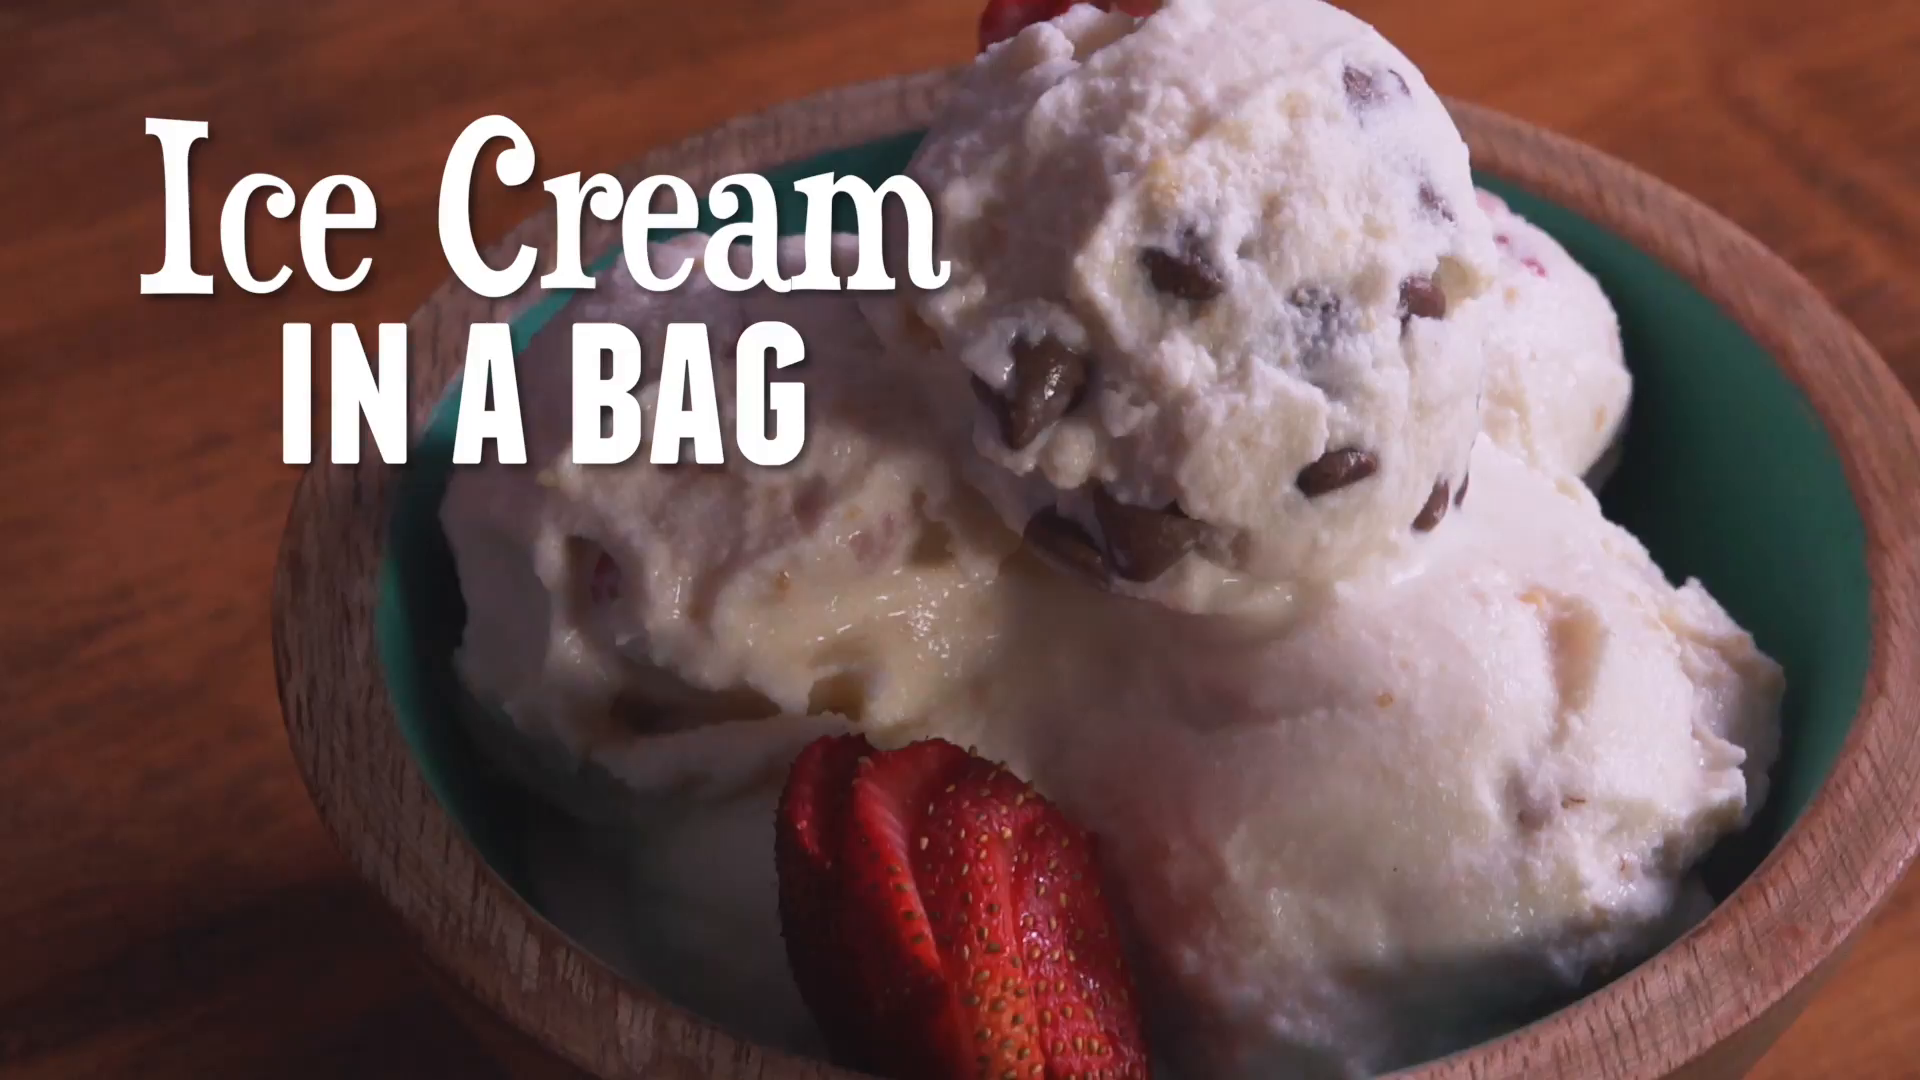 Ice cream in a bag hungry af tastemade ccuart Gallery